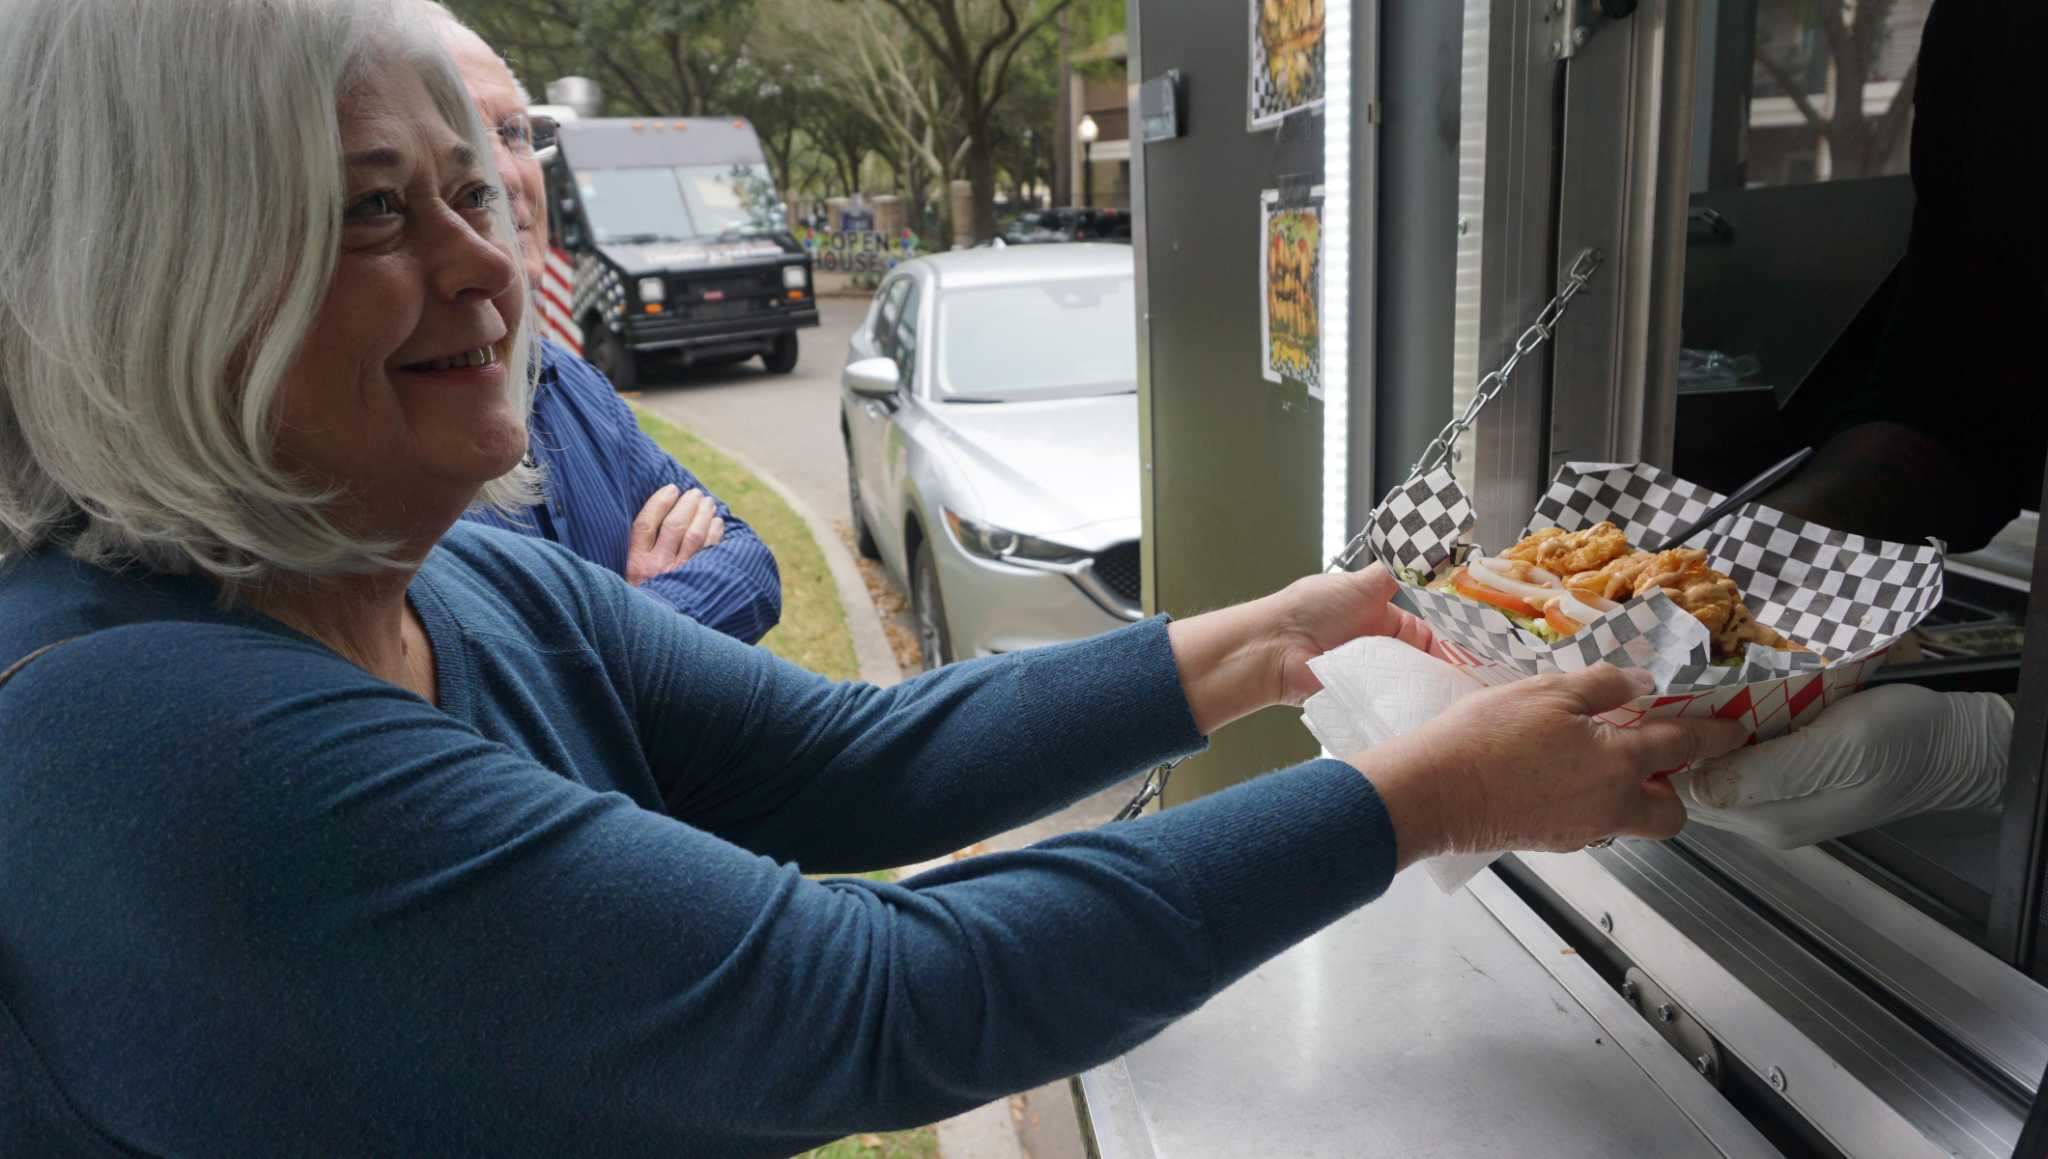 3rd Annual Spring Food Truck Festival enlivens Kingwood park with foods, goods